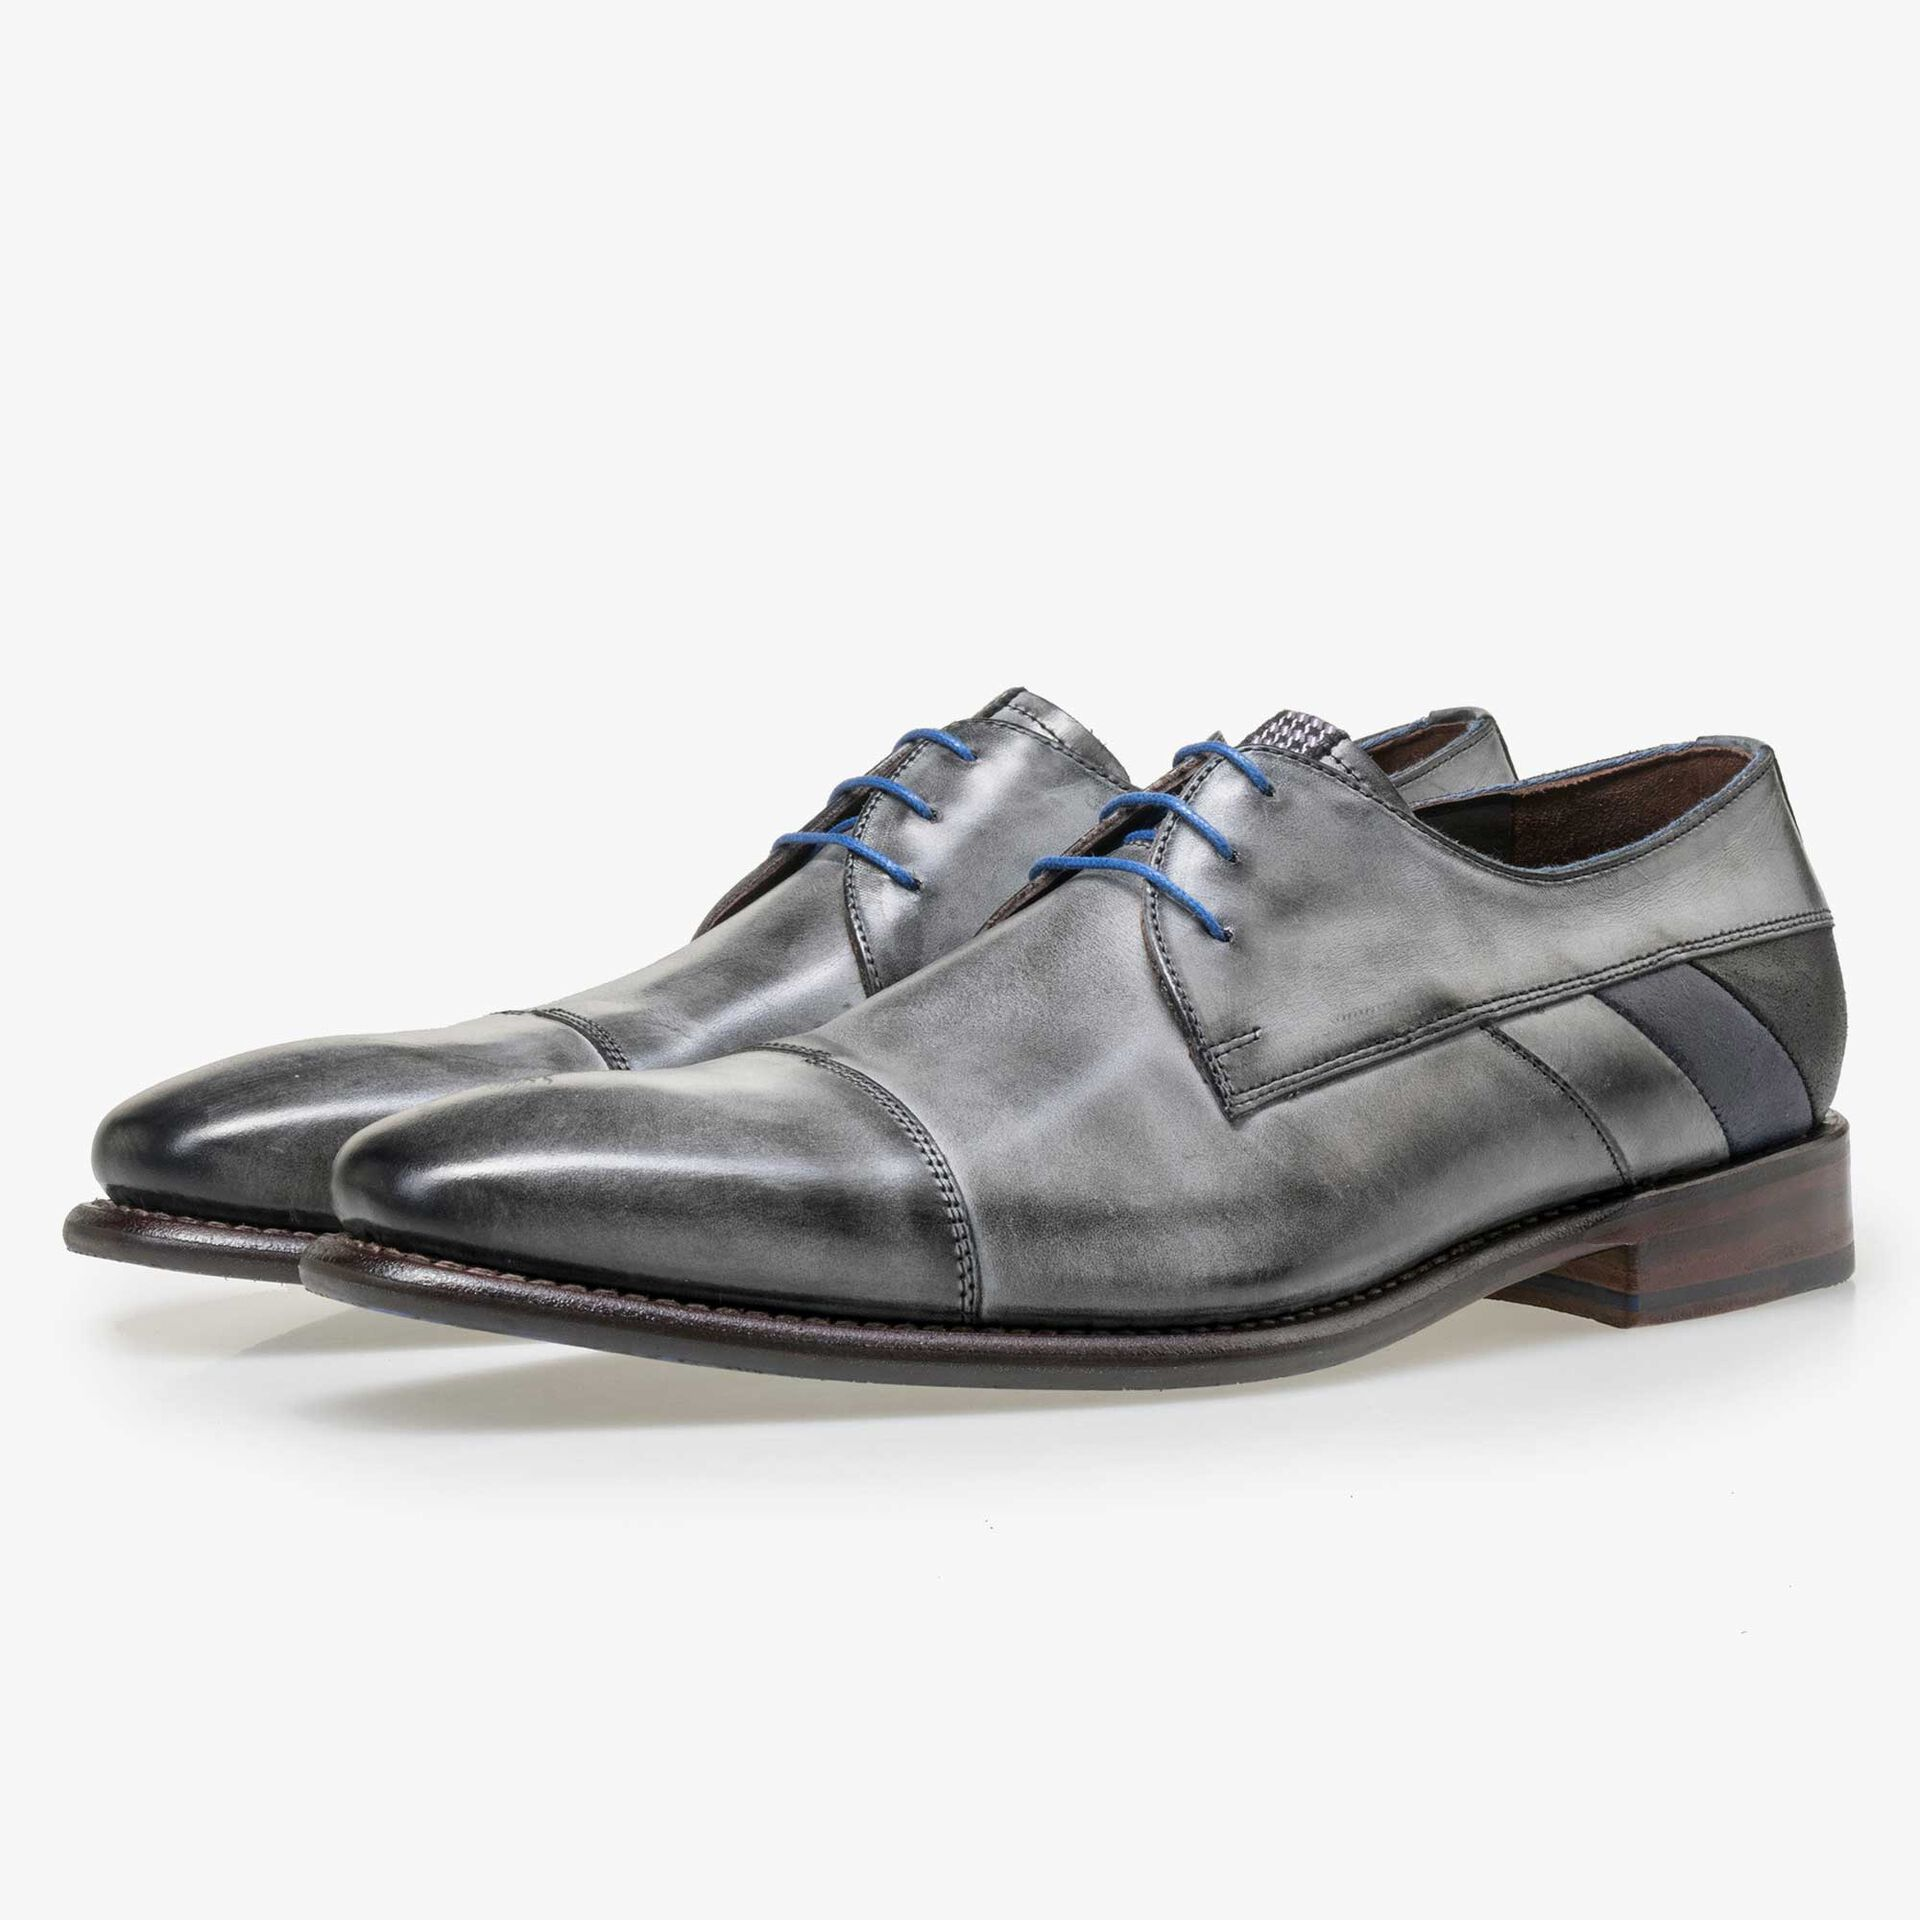 Floris van Bommel men's grey leather lace shoe